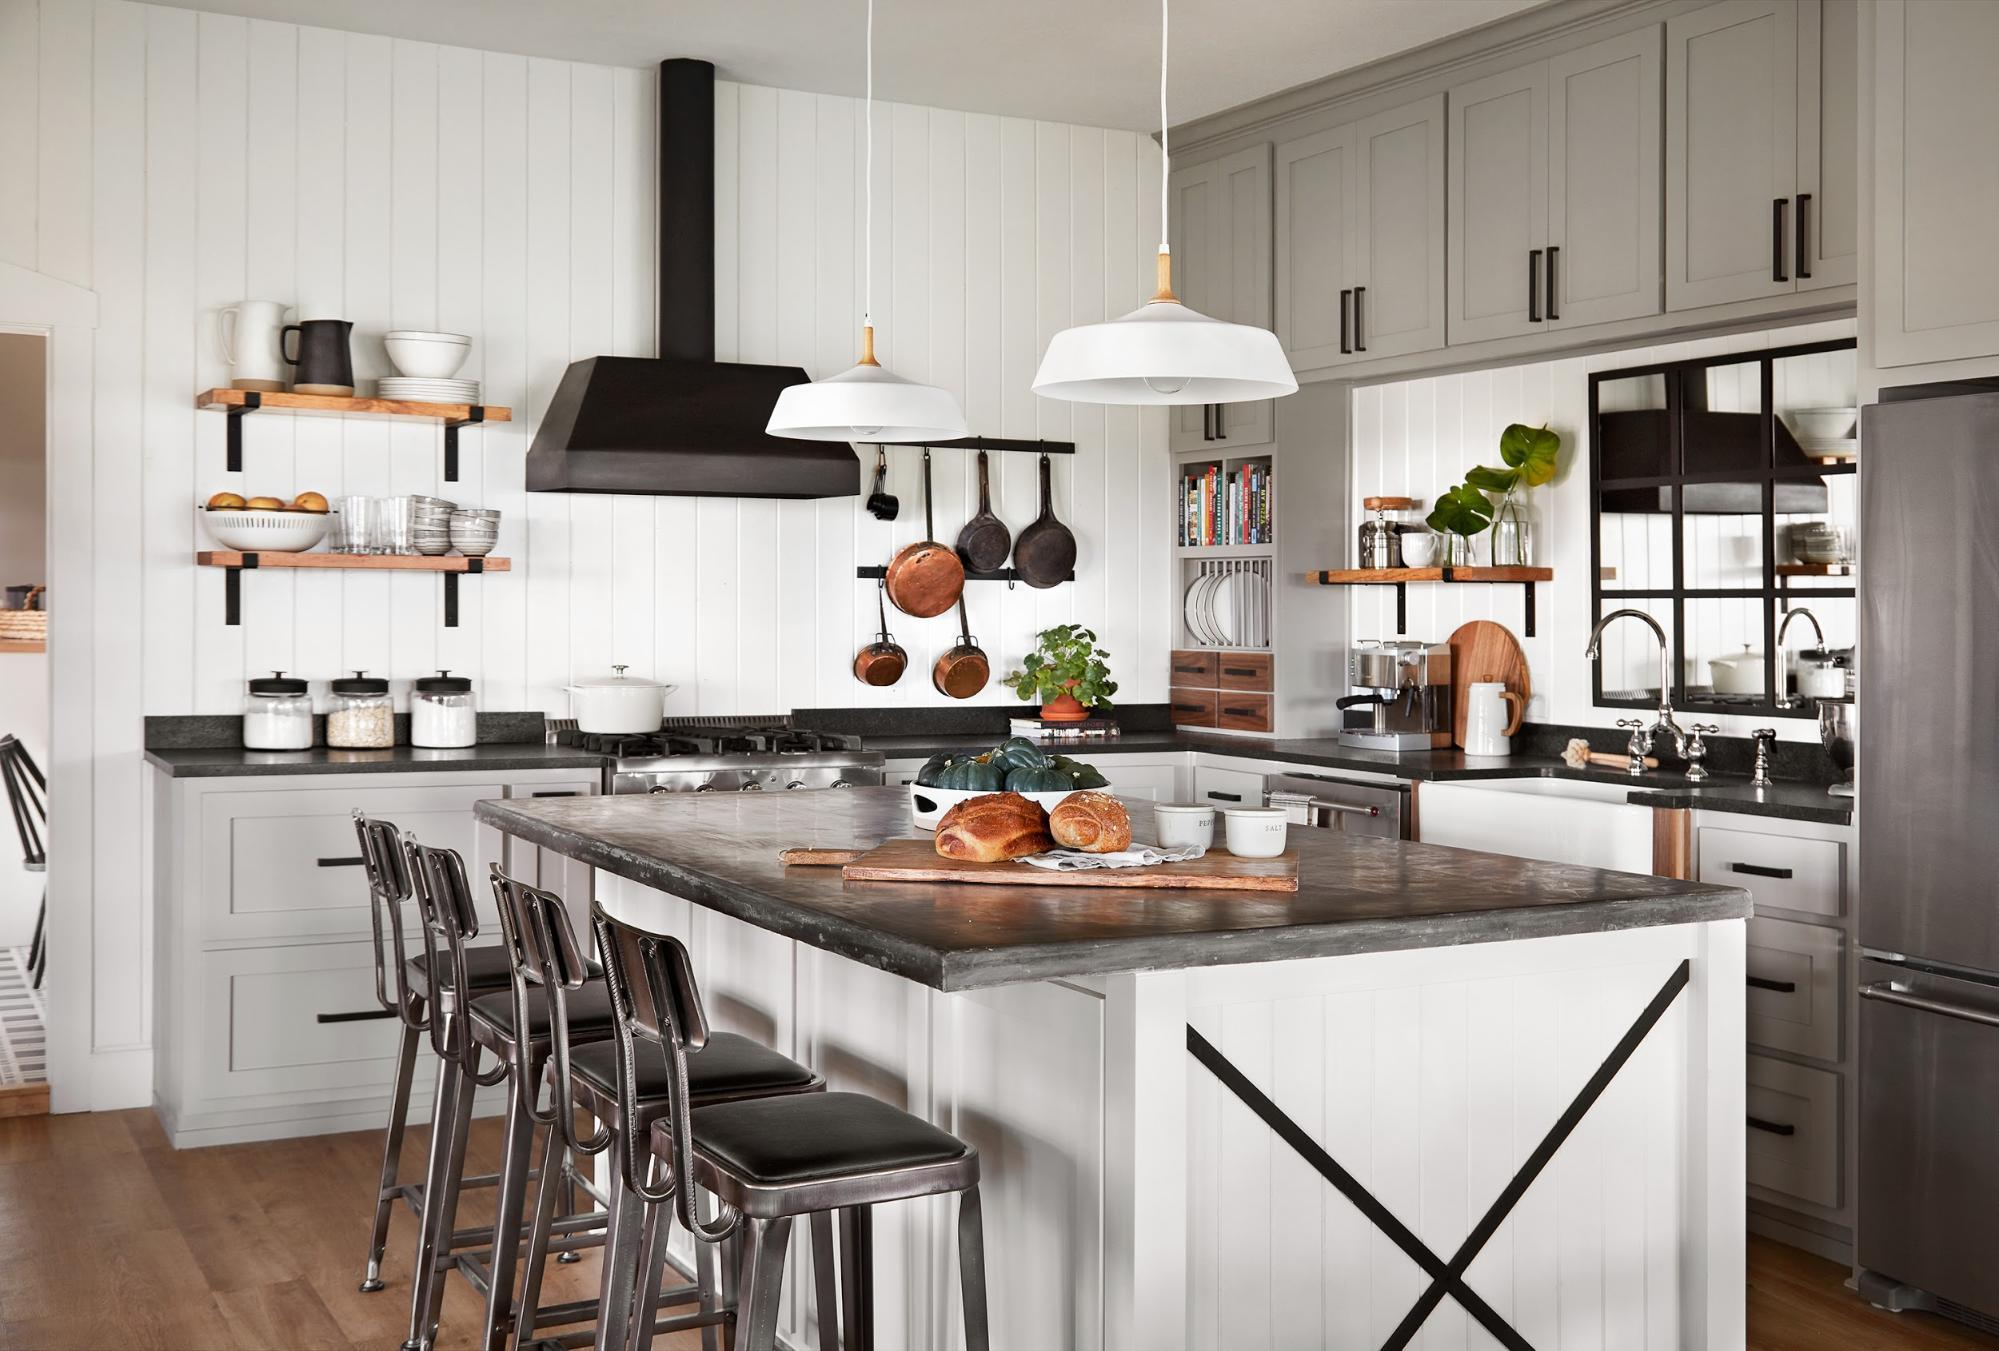 Modern Farmhouse Kitchen Design Tips Ideas Magnolia,Lounge Beach Style Interior Design